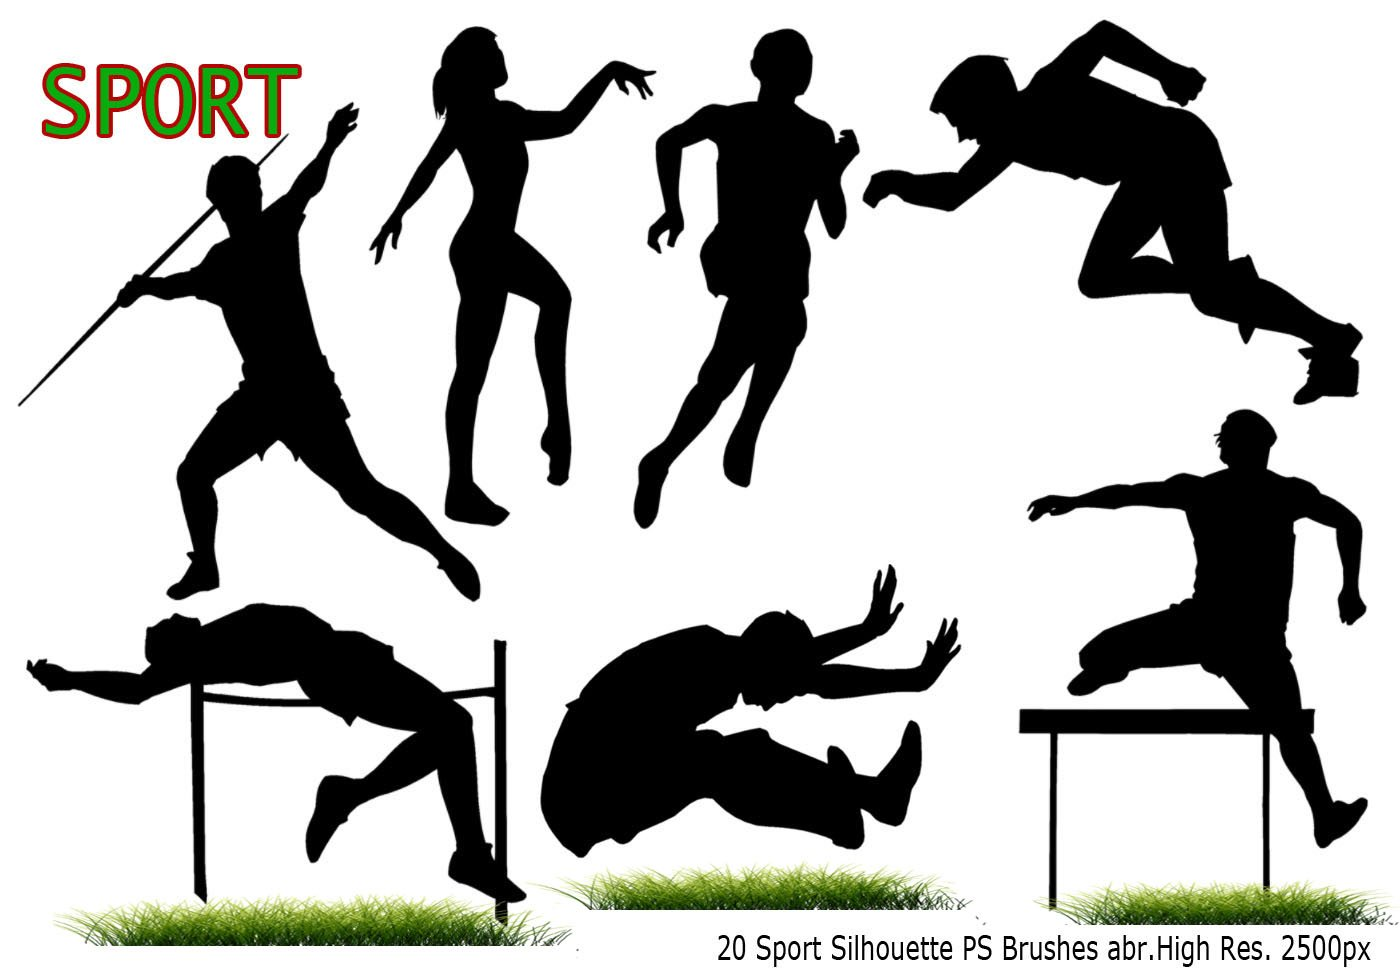 Dynamic Sports Figures Silhouette: Sport Silhouette PS Brushes Abr